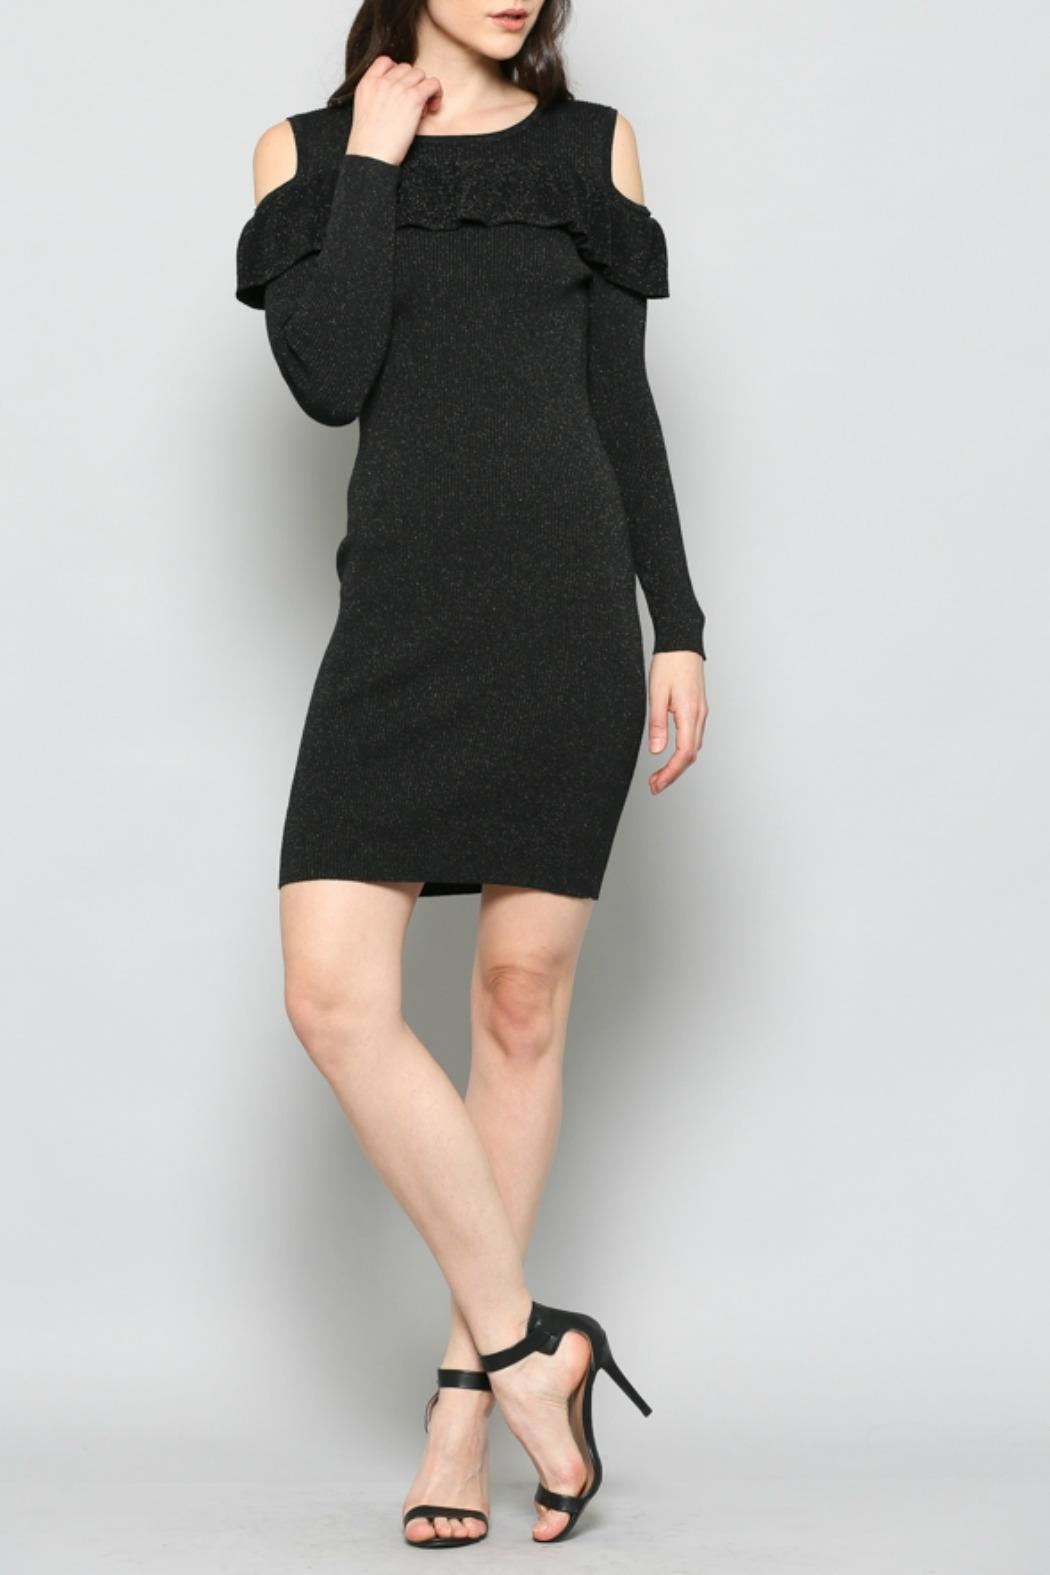 FATE by LFD Cold-Shoulder Rib-Knit Dress - Front Cropped Image